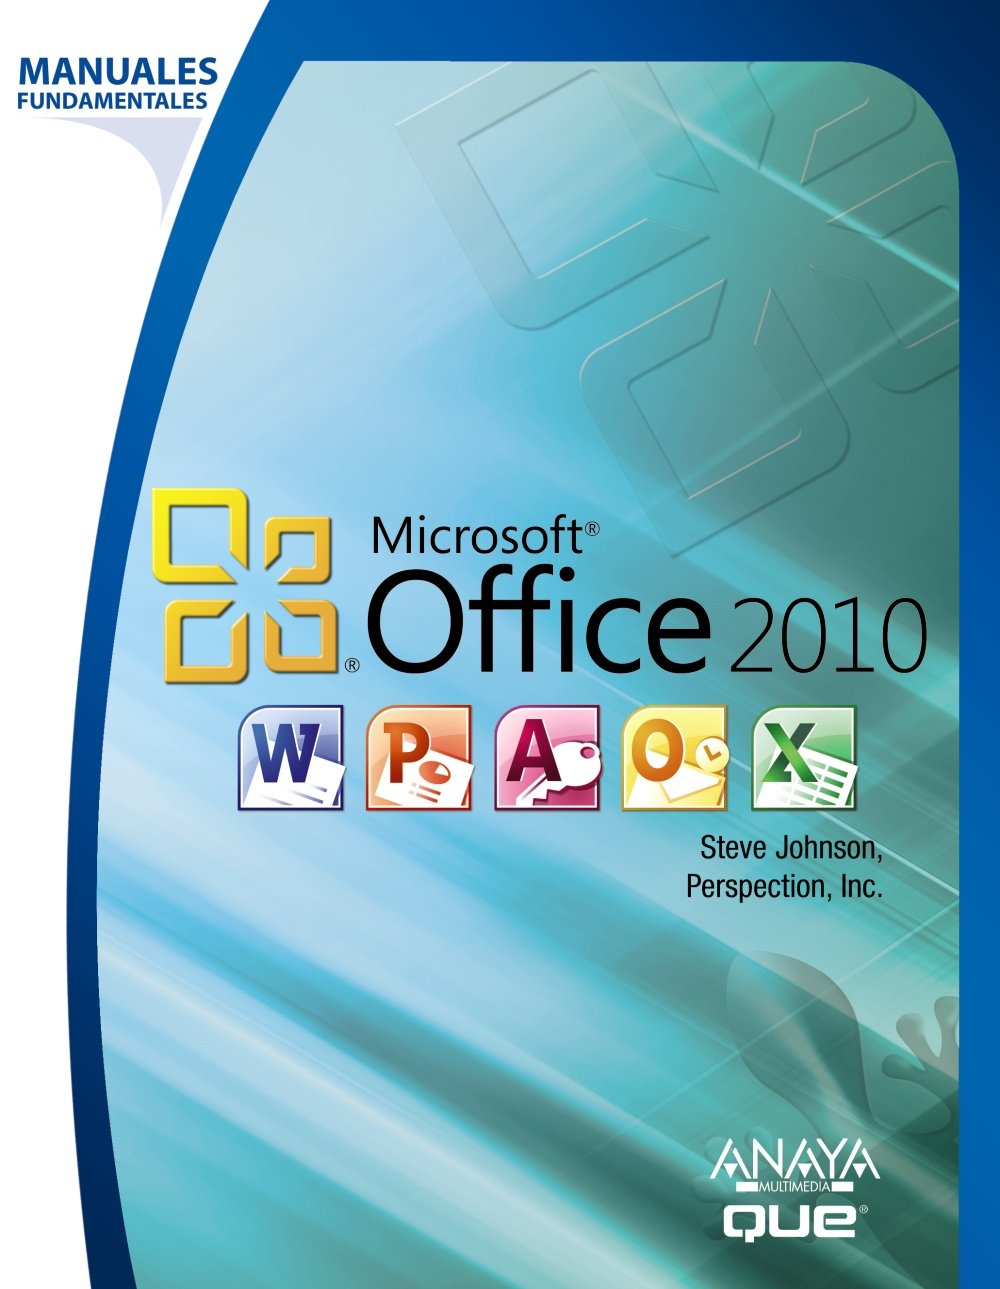 Office 2010 (Manuales Fundamentales) Tapa blanda – 14 feb 2011 Steve Johnston ANAYA MULTIMEDIA 8441528888 LBR9788441528888D65